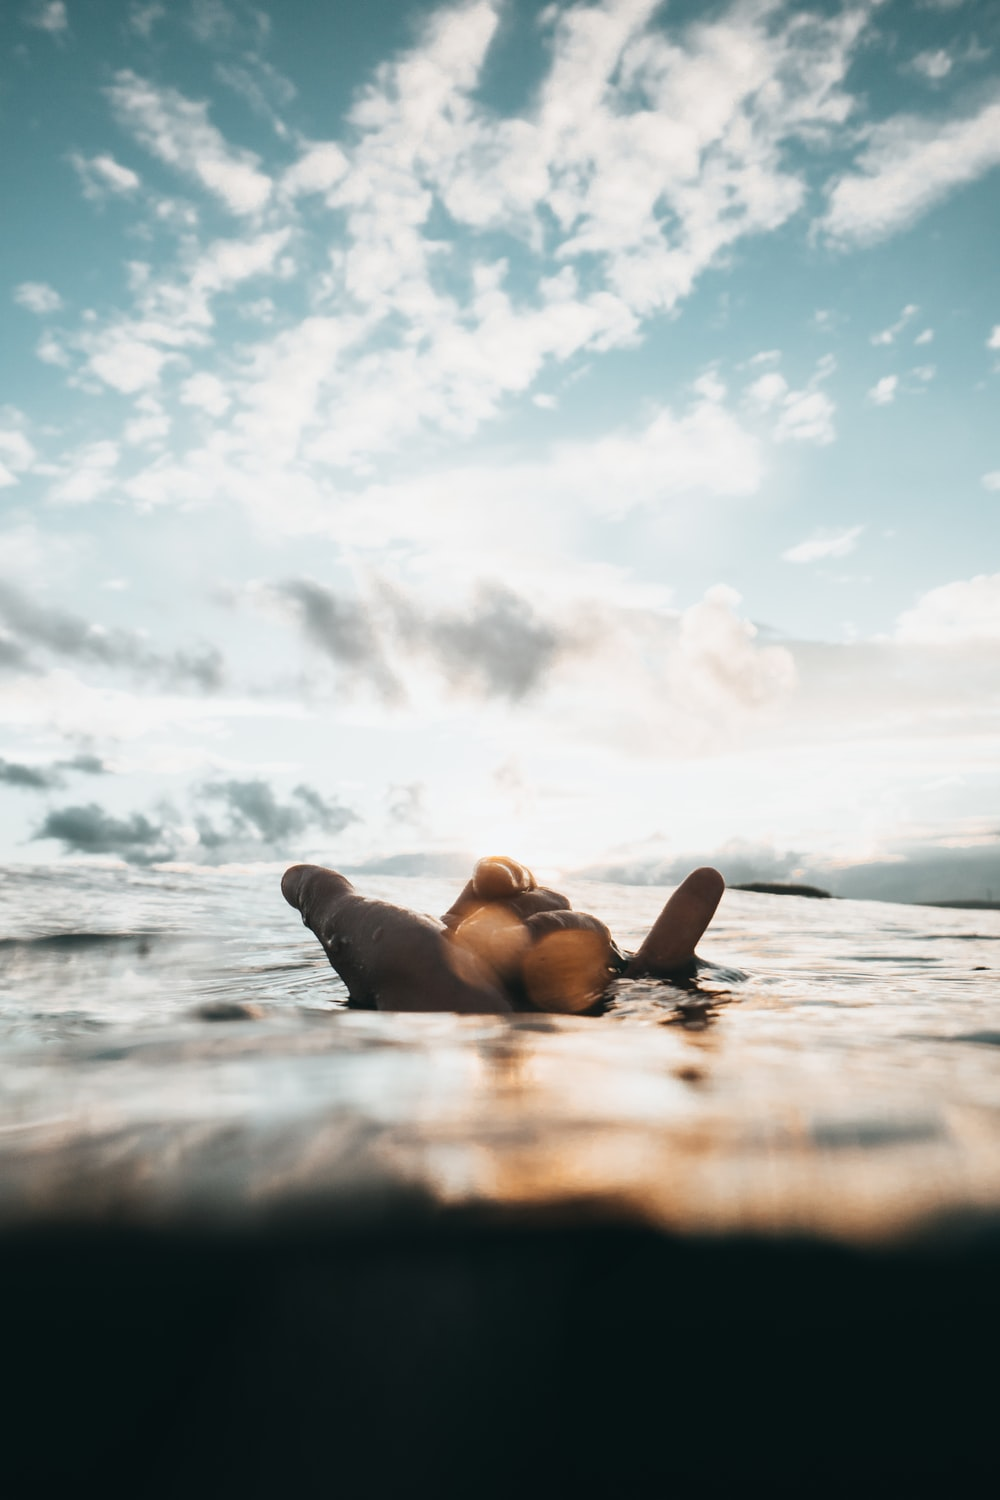 photo of person's submerging in body of water